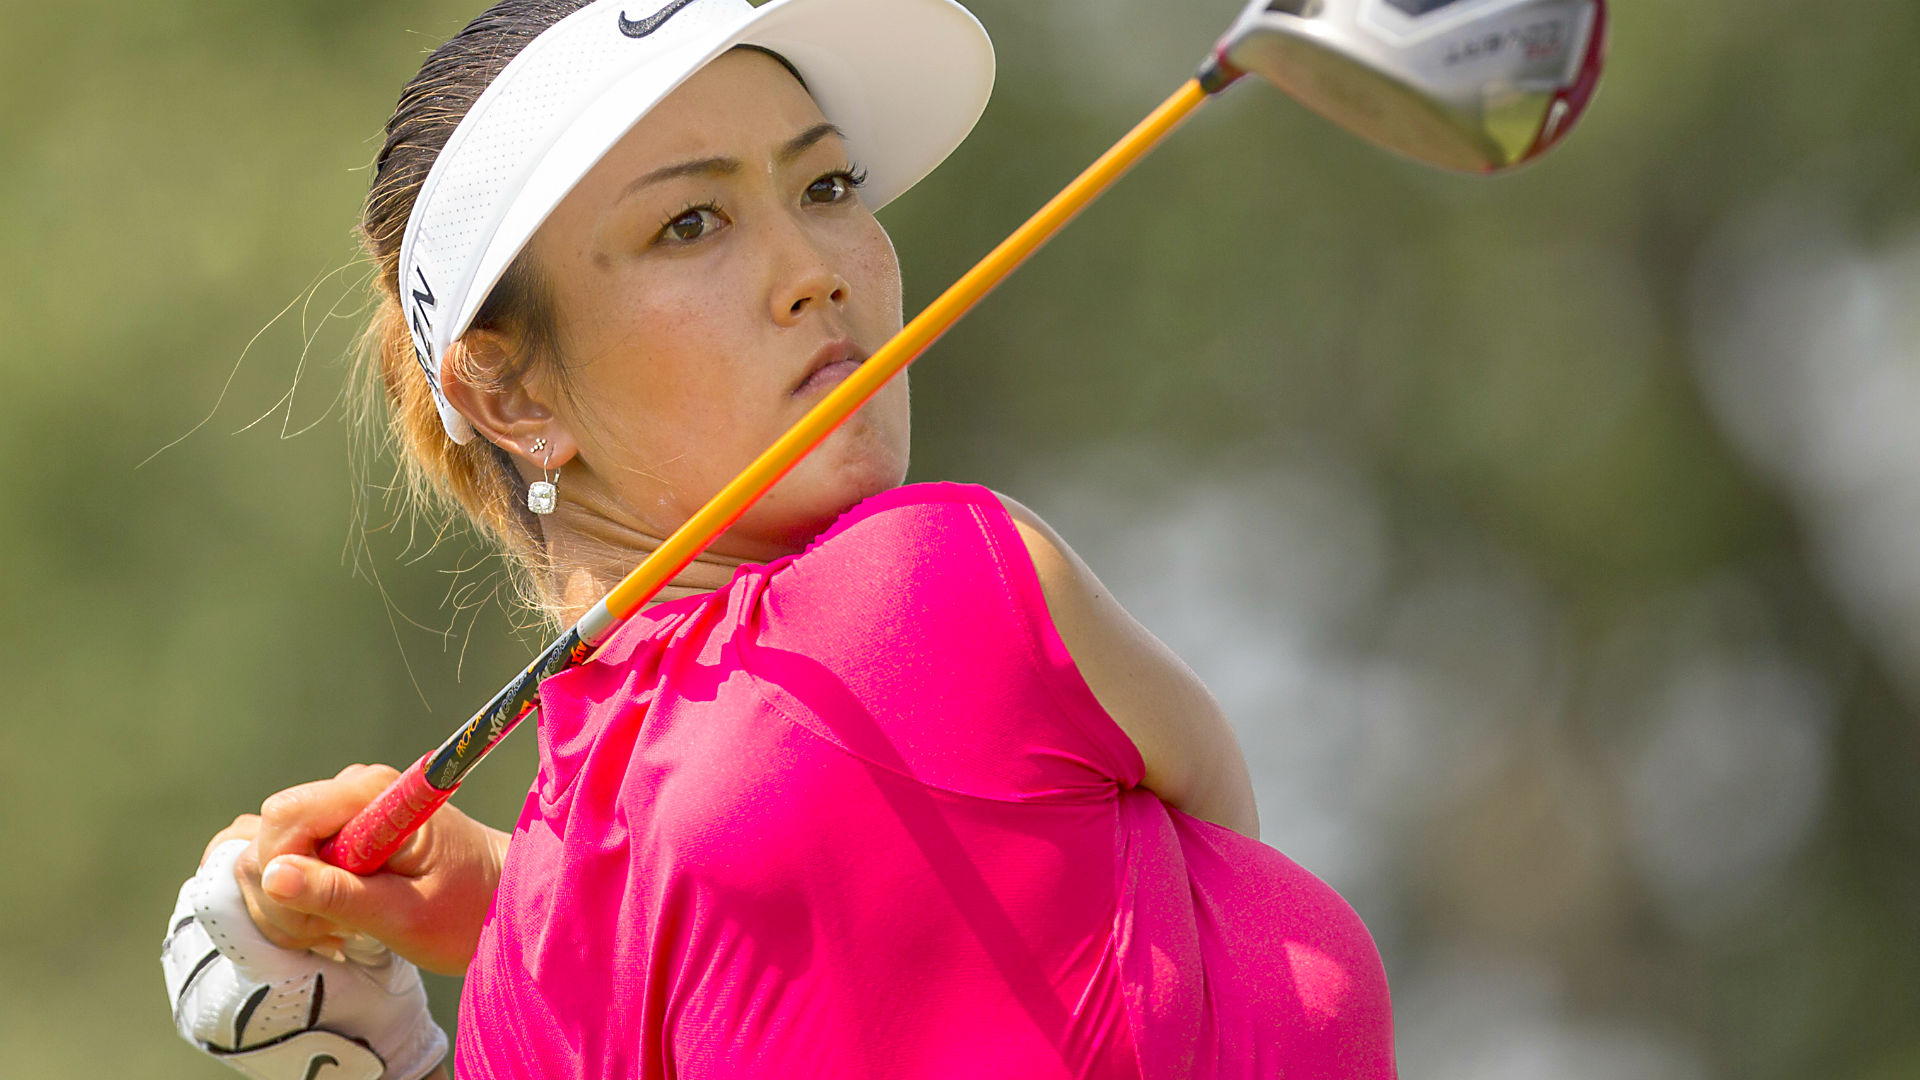 Alex leads LPGA event by one after first round in Ottawa